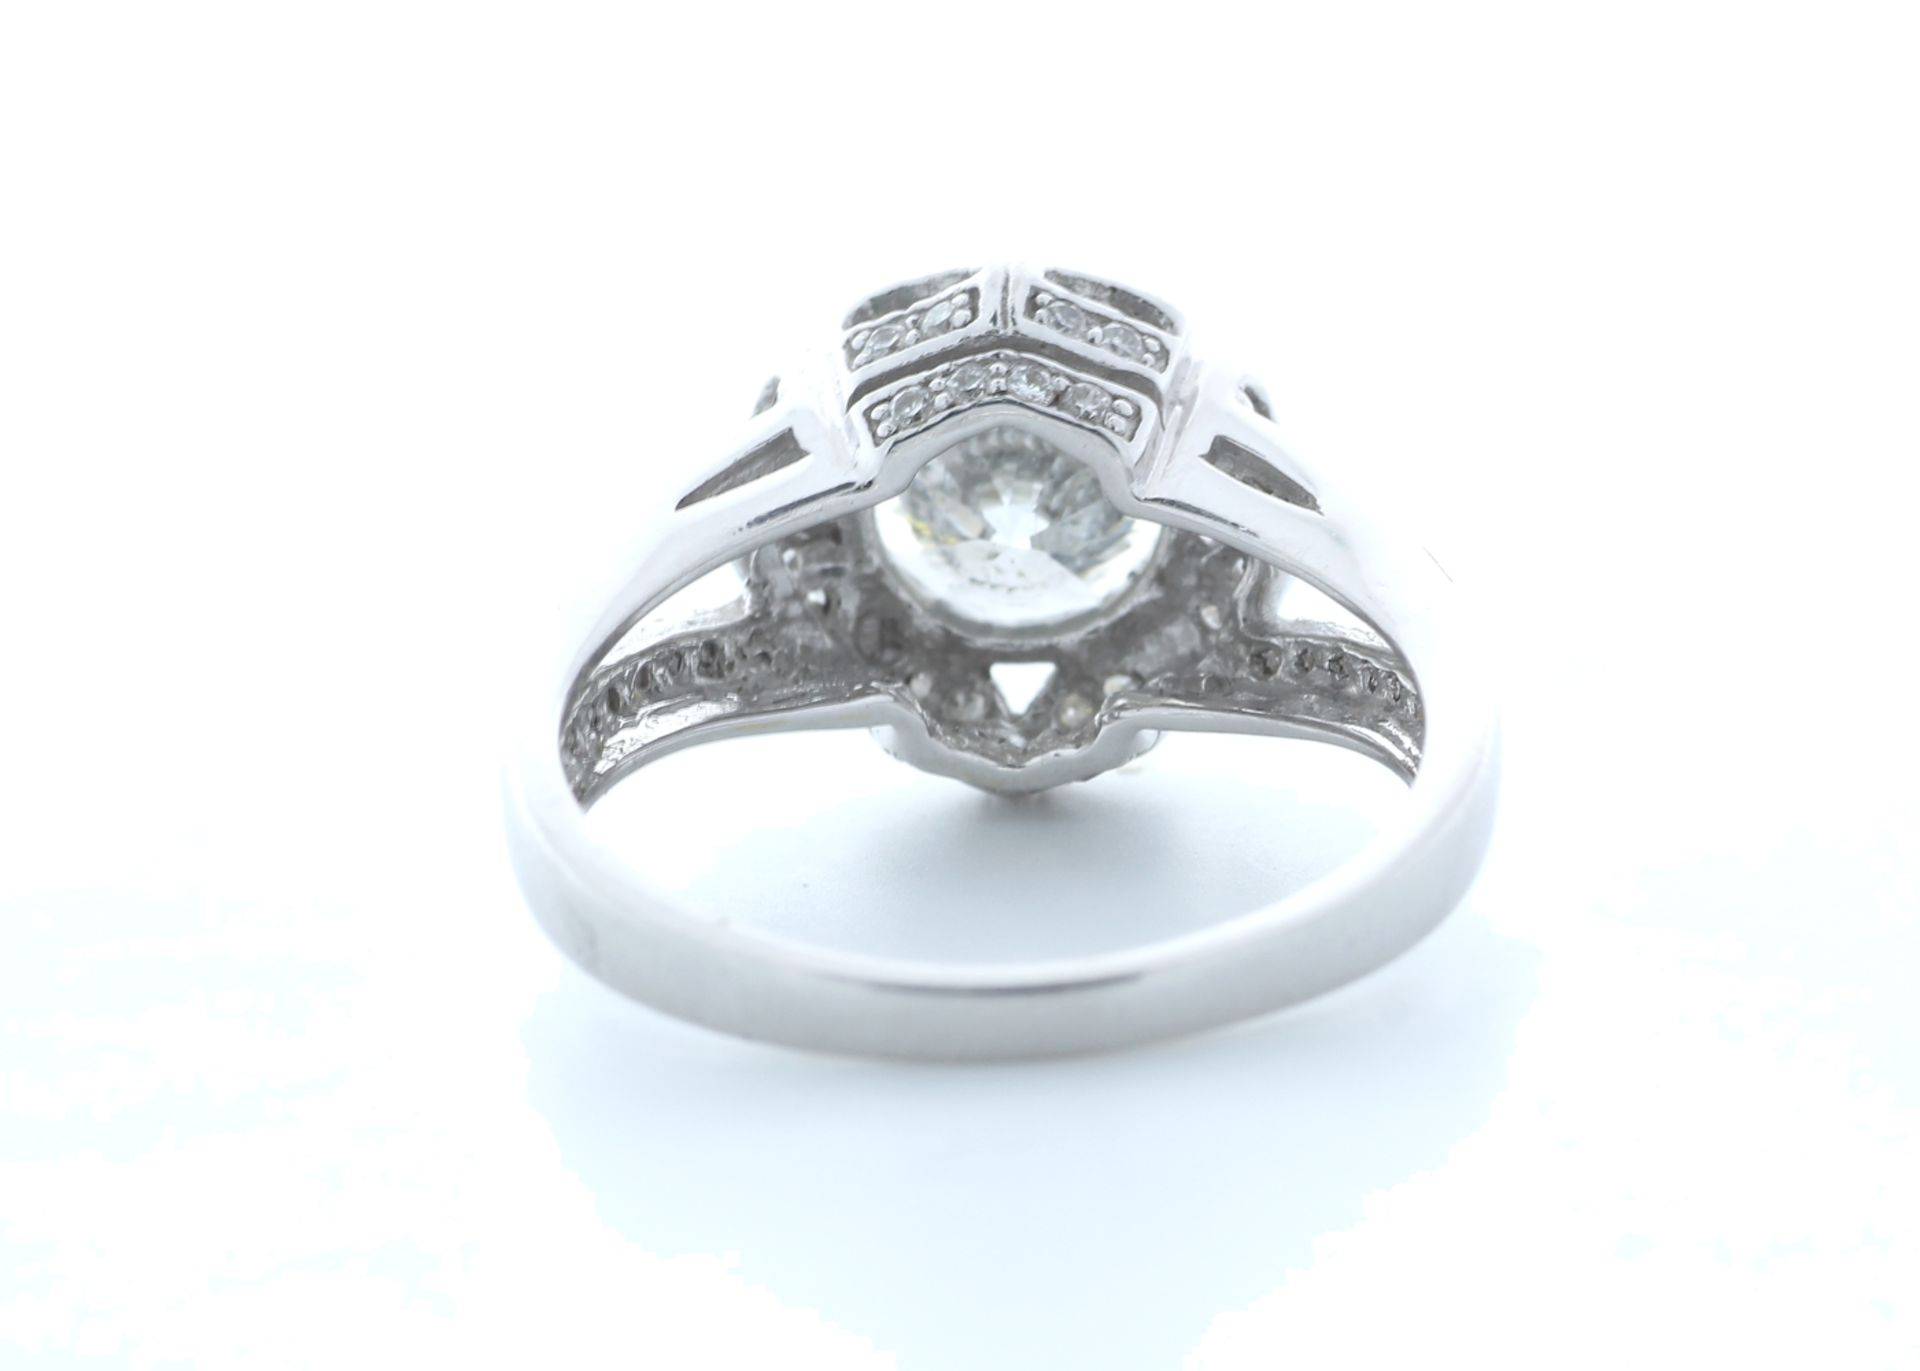 18ct White Gold Single Stone With Halo Setting Ring 2.06 (1.66) Carats - Valued by IDI £36,000. - Image 3 of 5